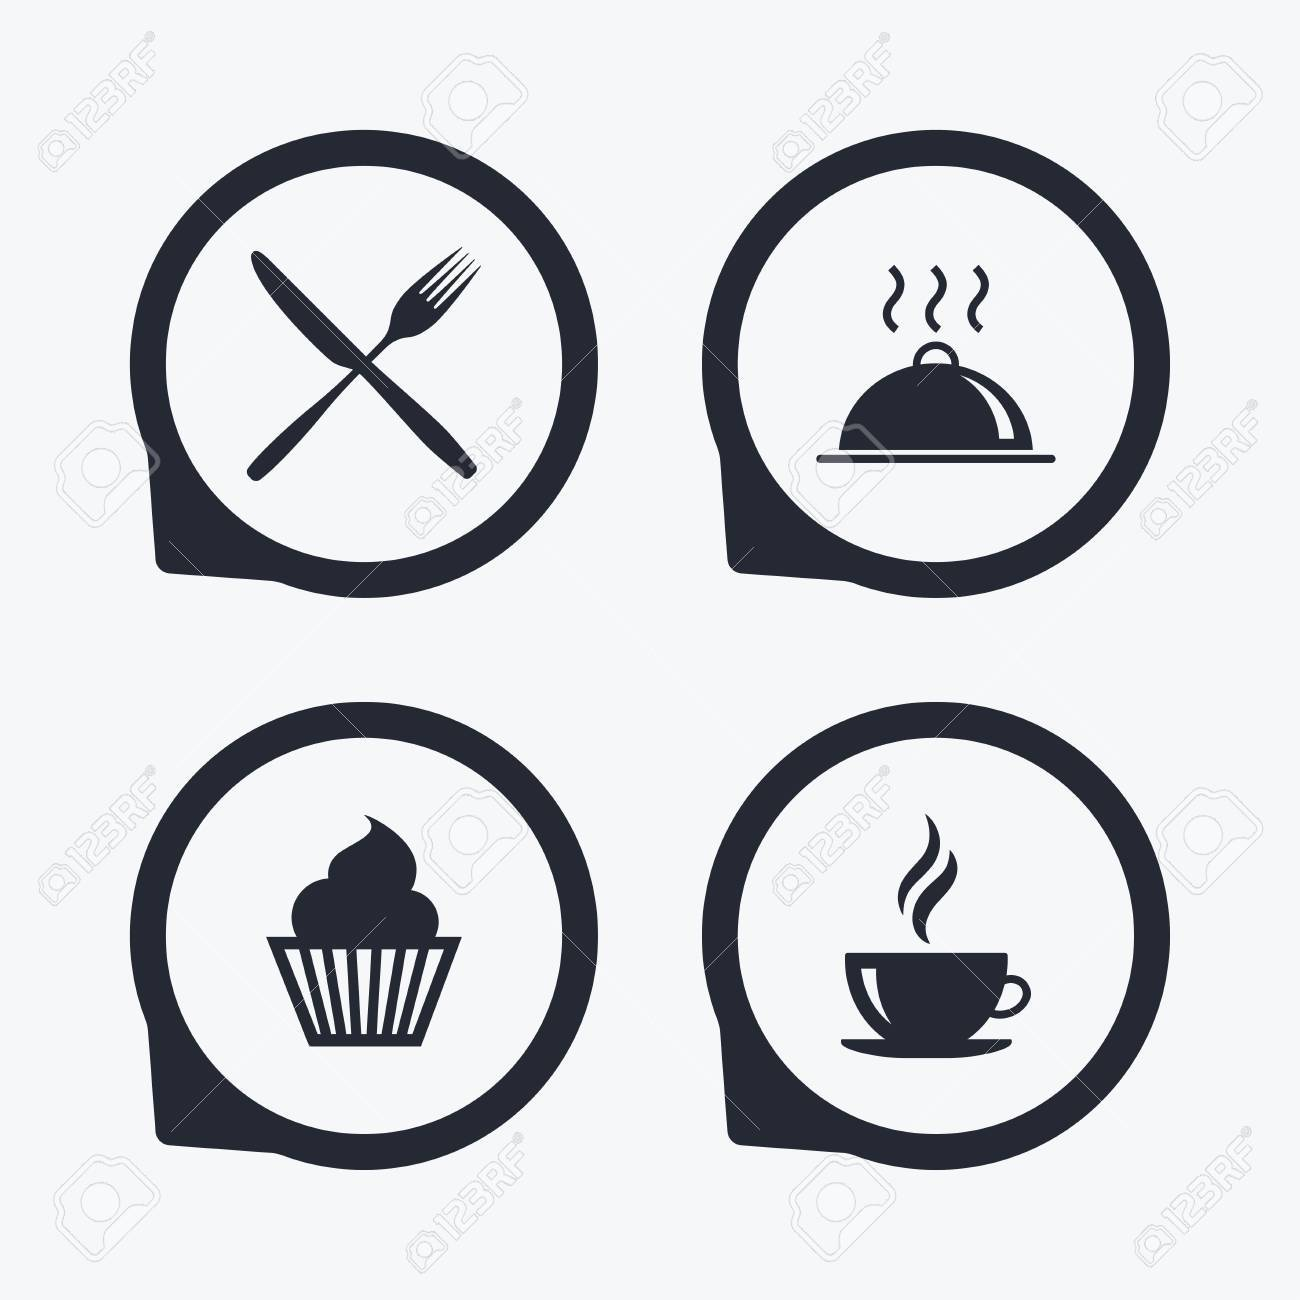 Food And Drink Icons Muffin Cupcake Symbol Fork And Knife Sign